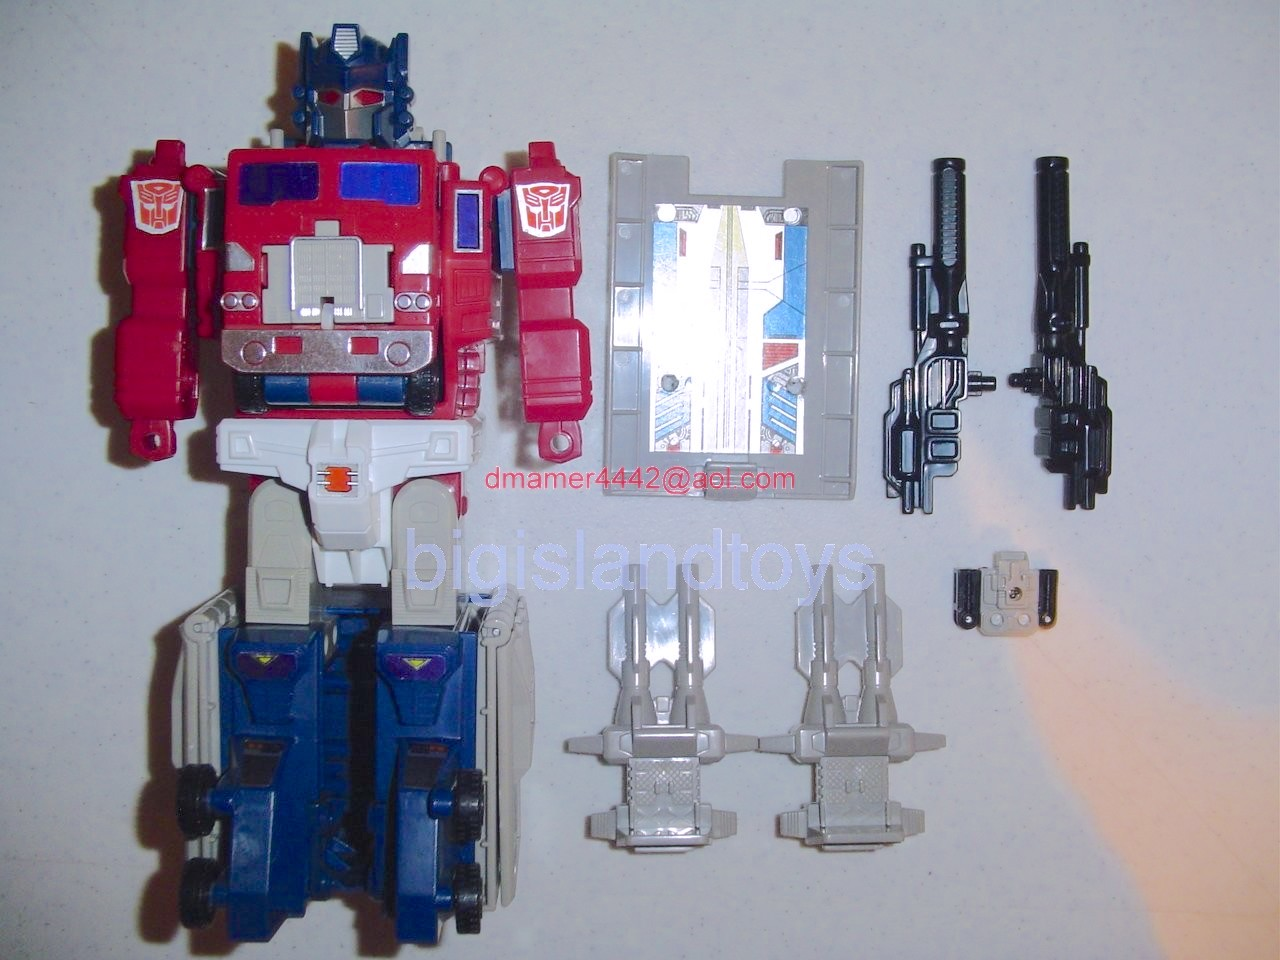 Transformers Generation One G1 1988  Optimus Prime with Hi-Q